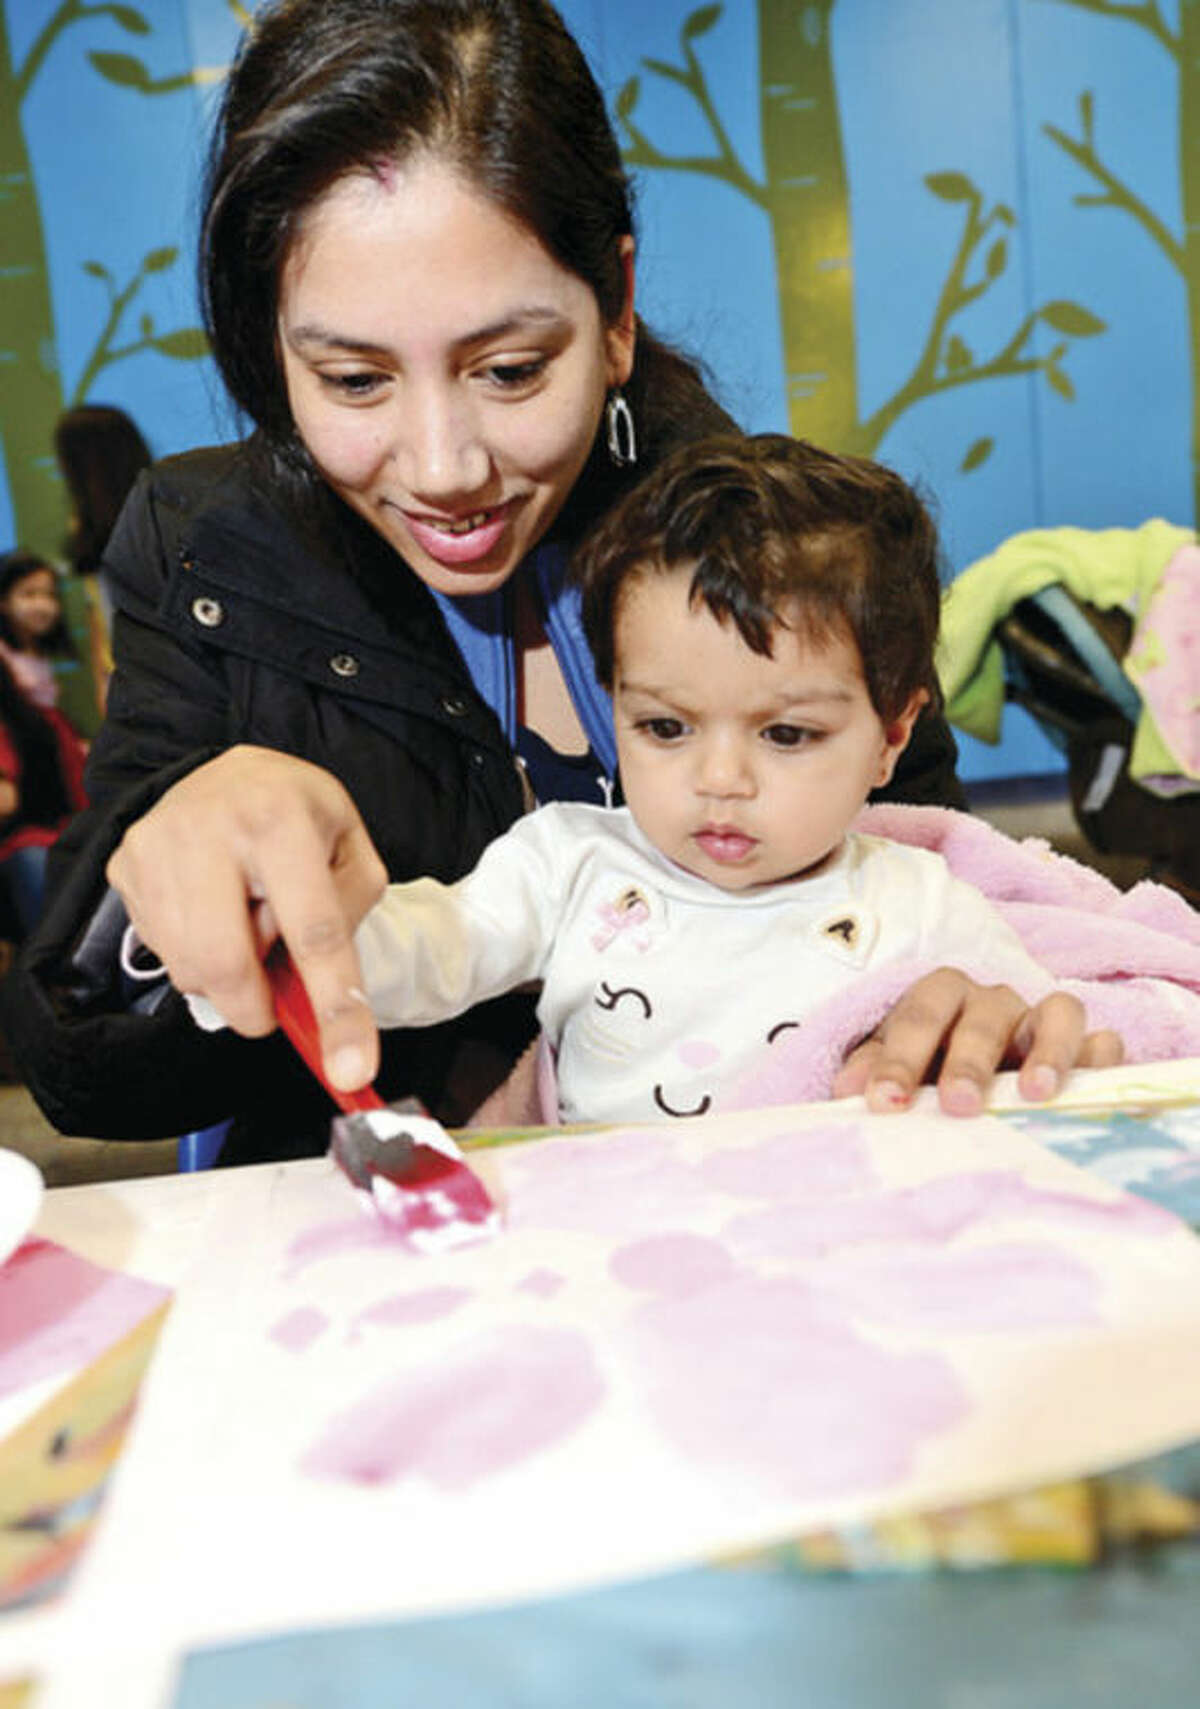 Tejal Athavia and her daughter, Ruchita, 9 months old, paint a craft project during the Norwalk Public Library 2nd annual Norwalk Has Heart Day combined with the National Take Your Child to the Library Day featuring Peace by Piece: The Norwalk Community Quilt Project Saturday. Hour photo / Erik Trautmann